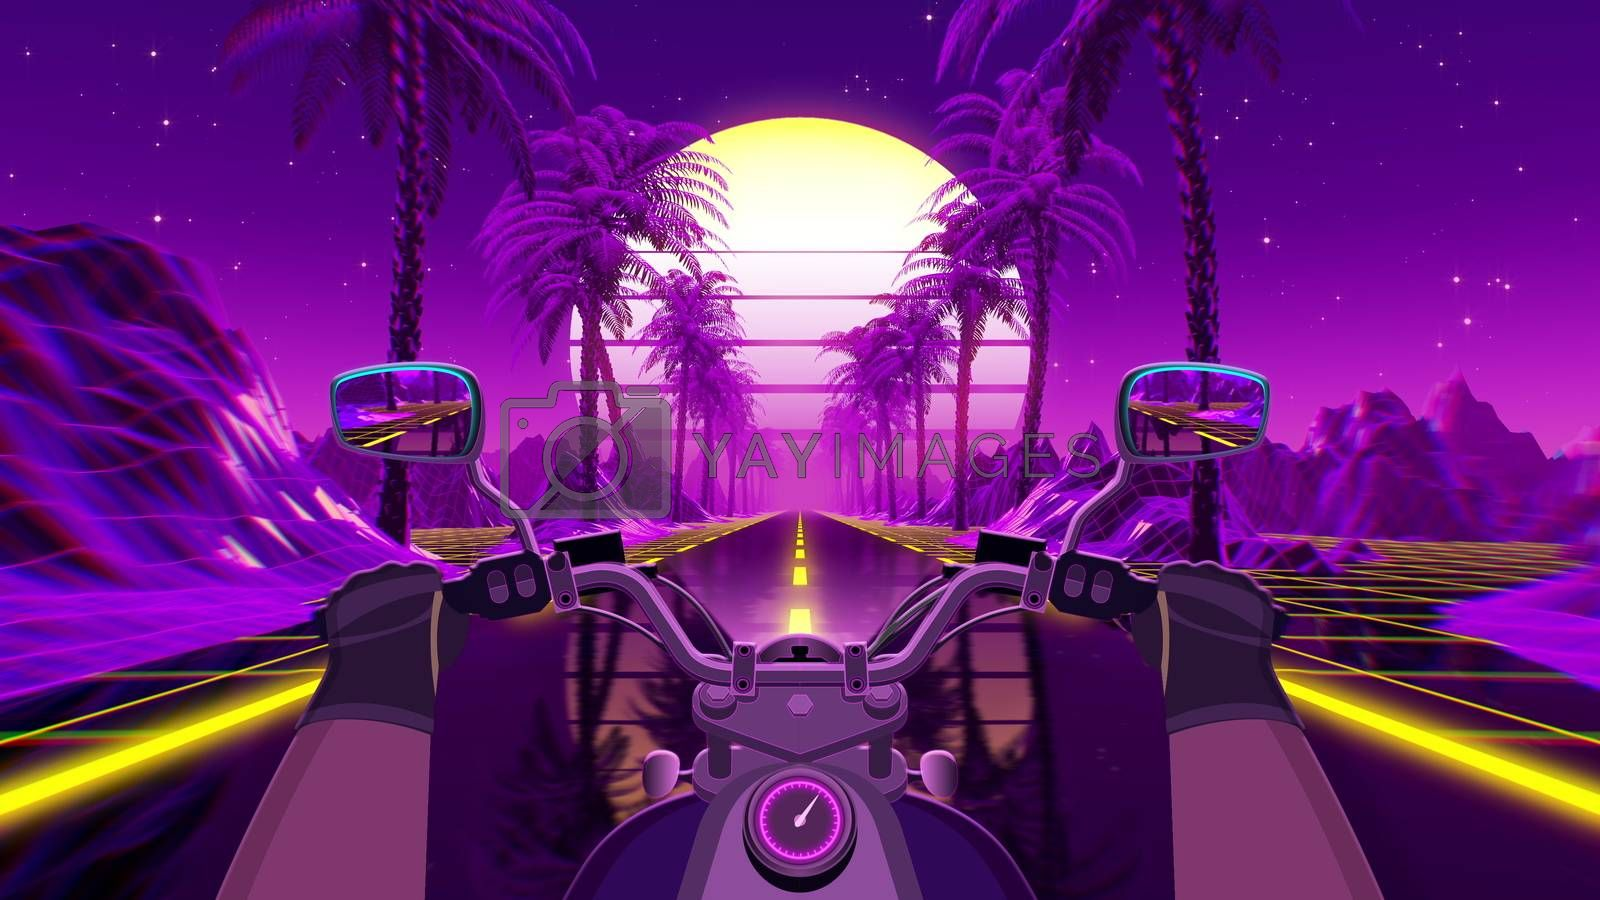 80s retro futuristic sci-fi background with motorcycle pov. Riding in retrowave VJ videogame landscape, neon lights and low poly grid. Stylized biker vintage vaporwave 3D animation background. 4K